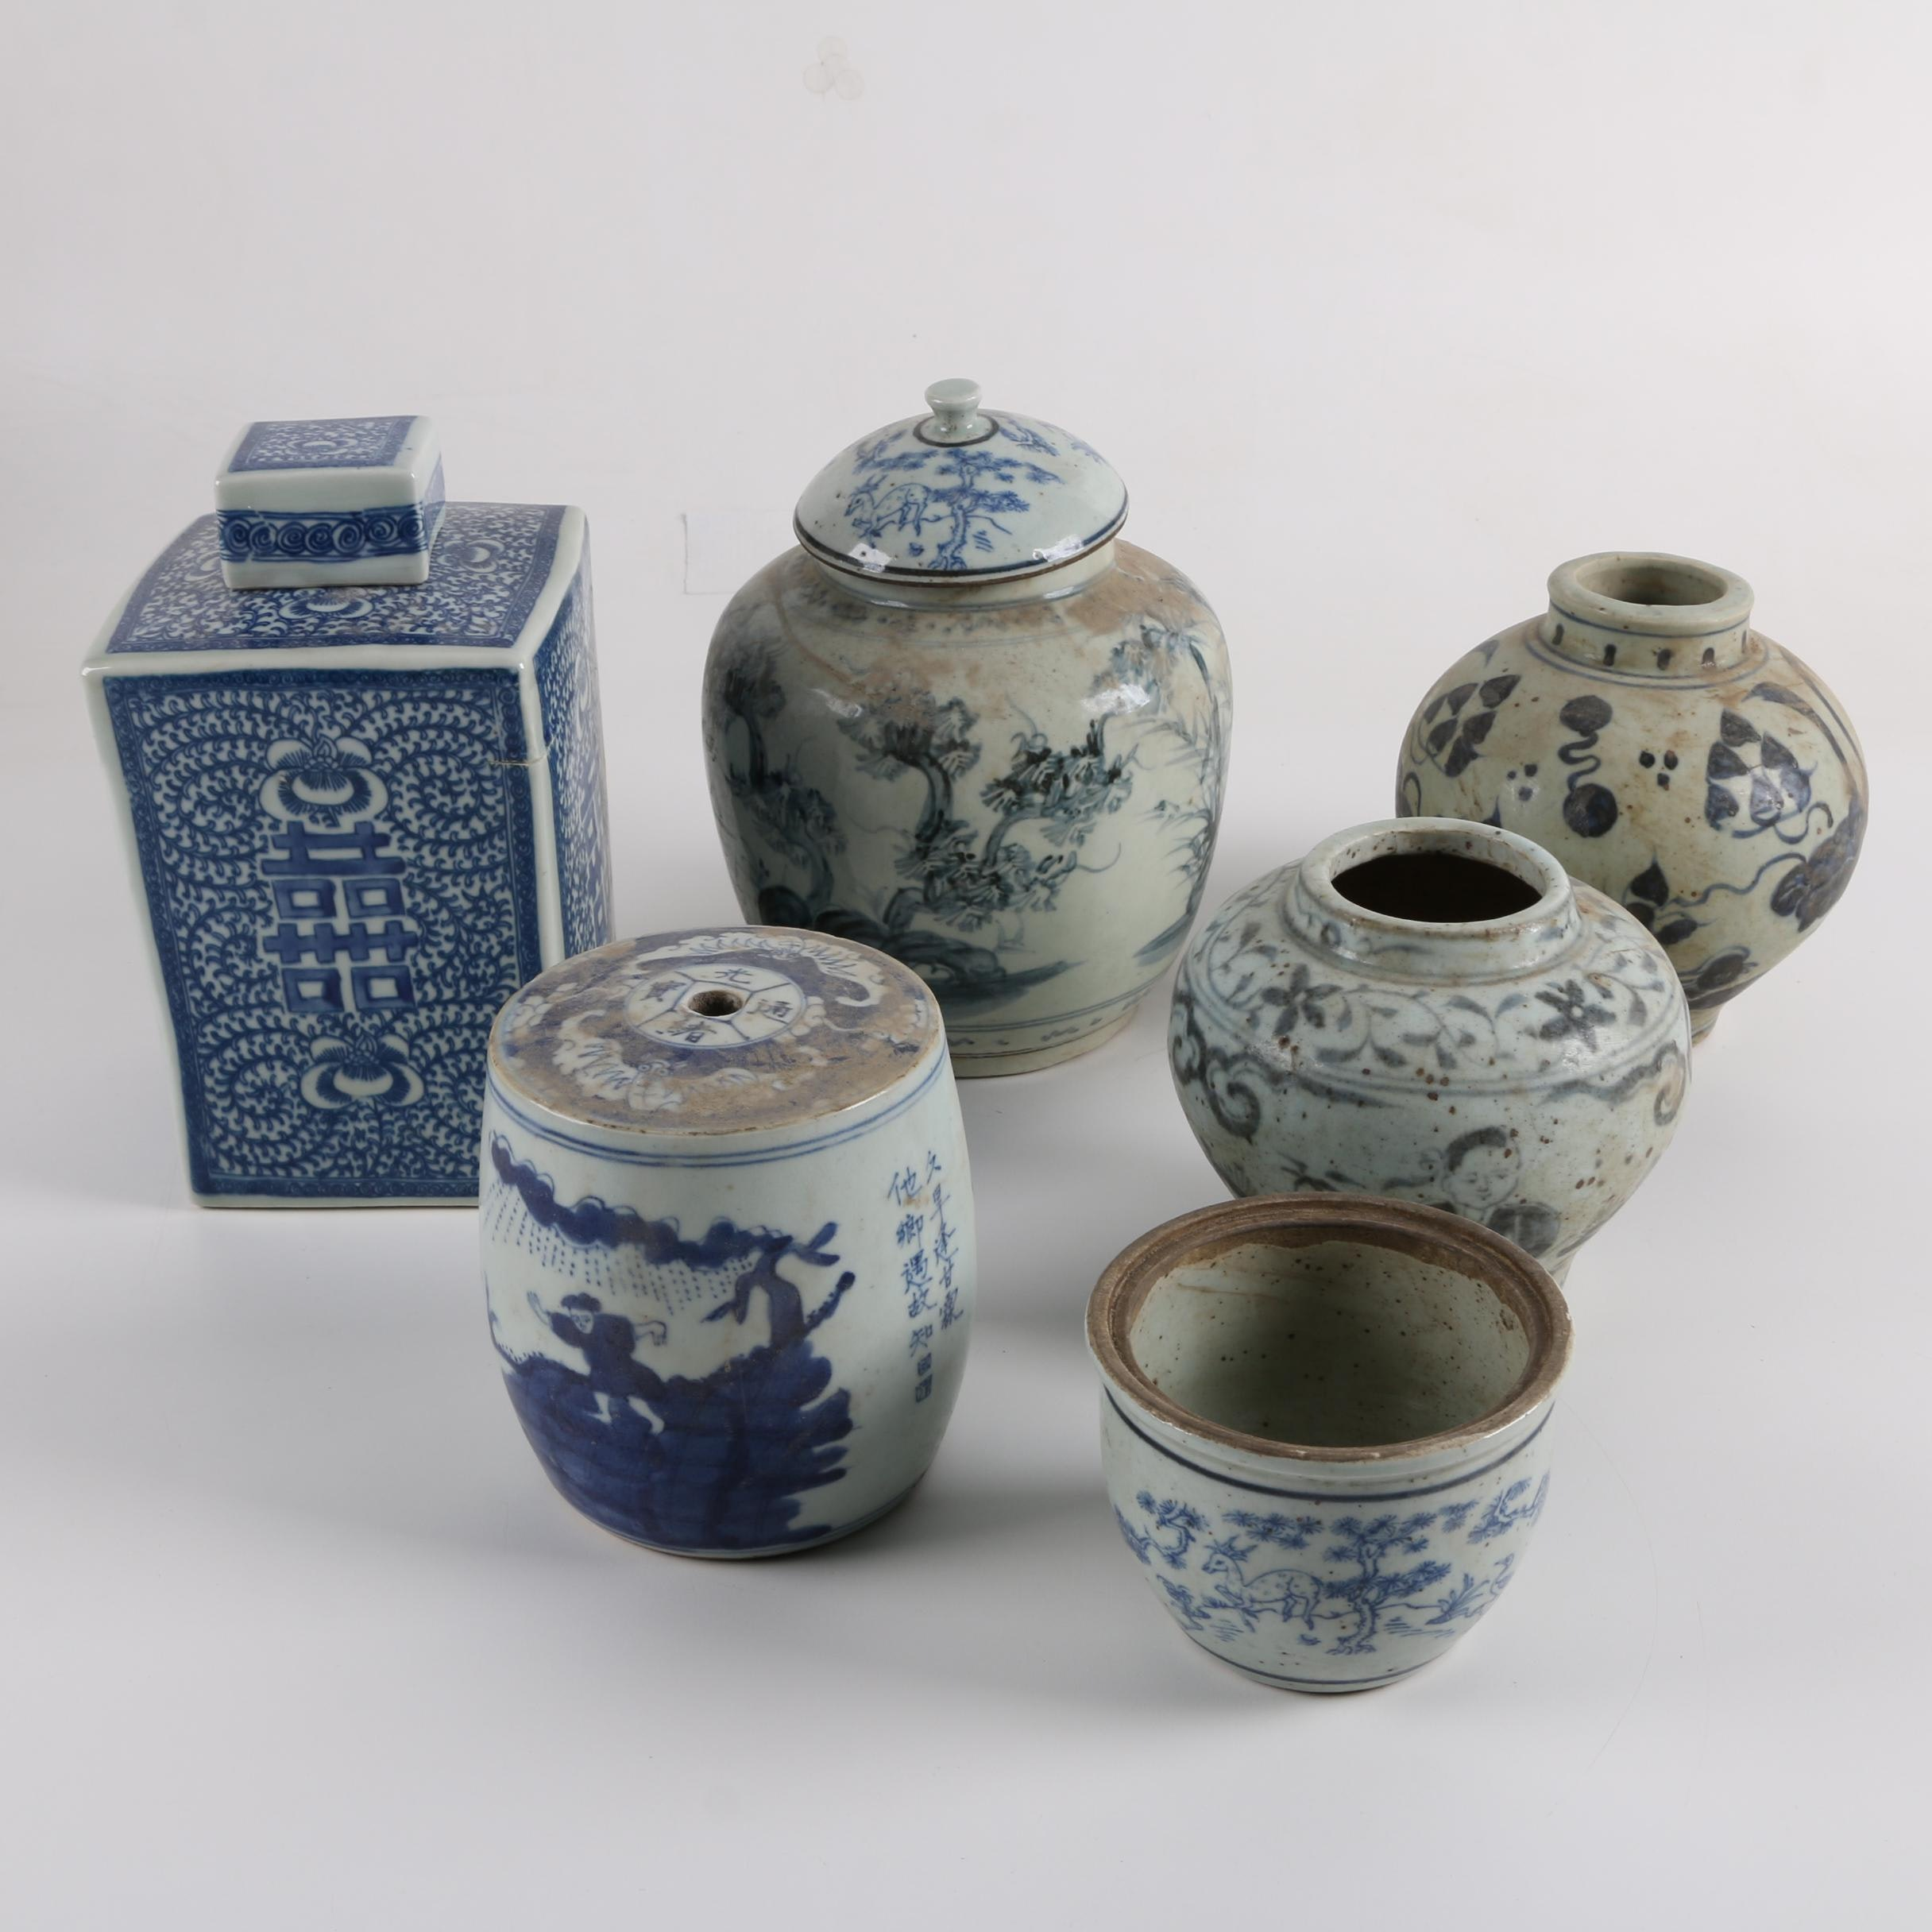 Contemporary Chinese Ceramic Vases and Ginger Jars